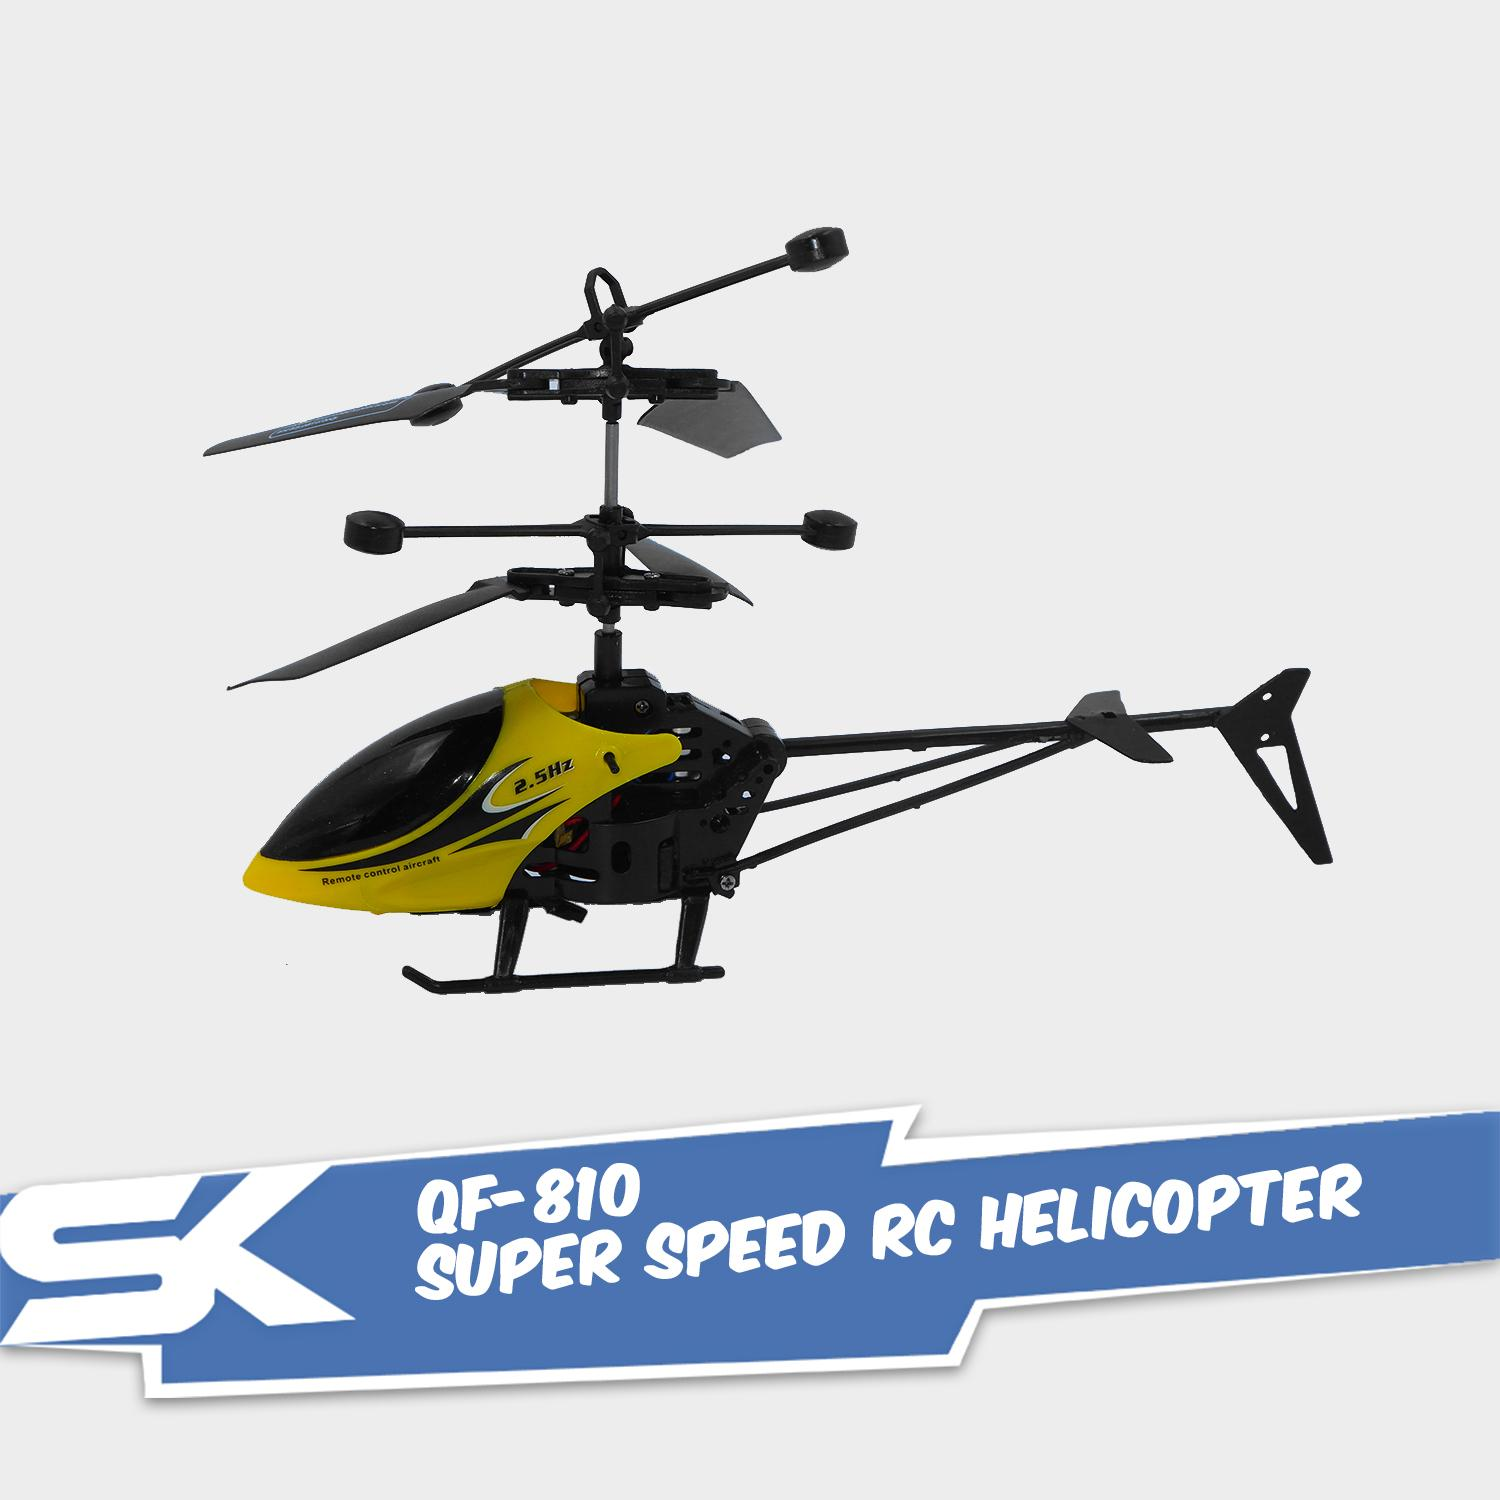 Qf-810 2.5 Super Speed Rc Helicopter By Sk Technologies.